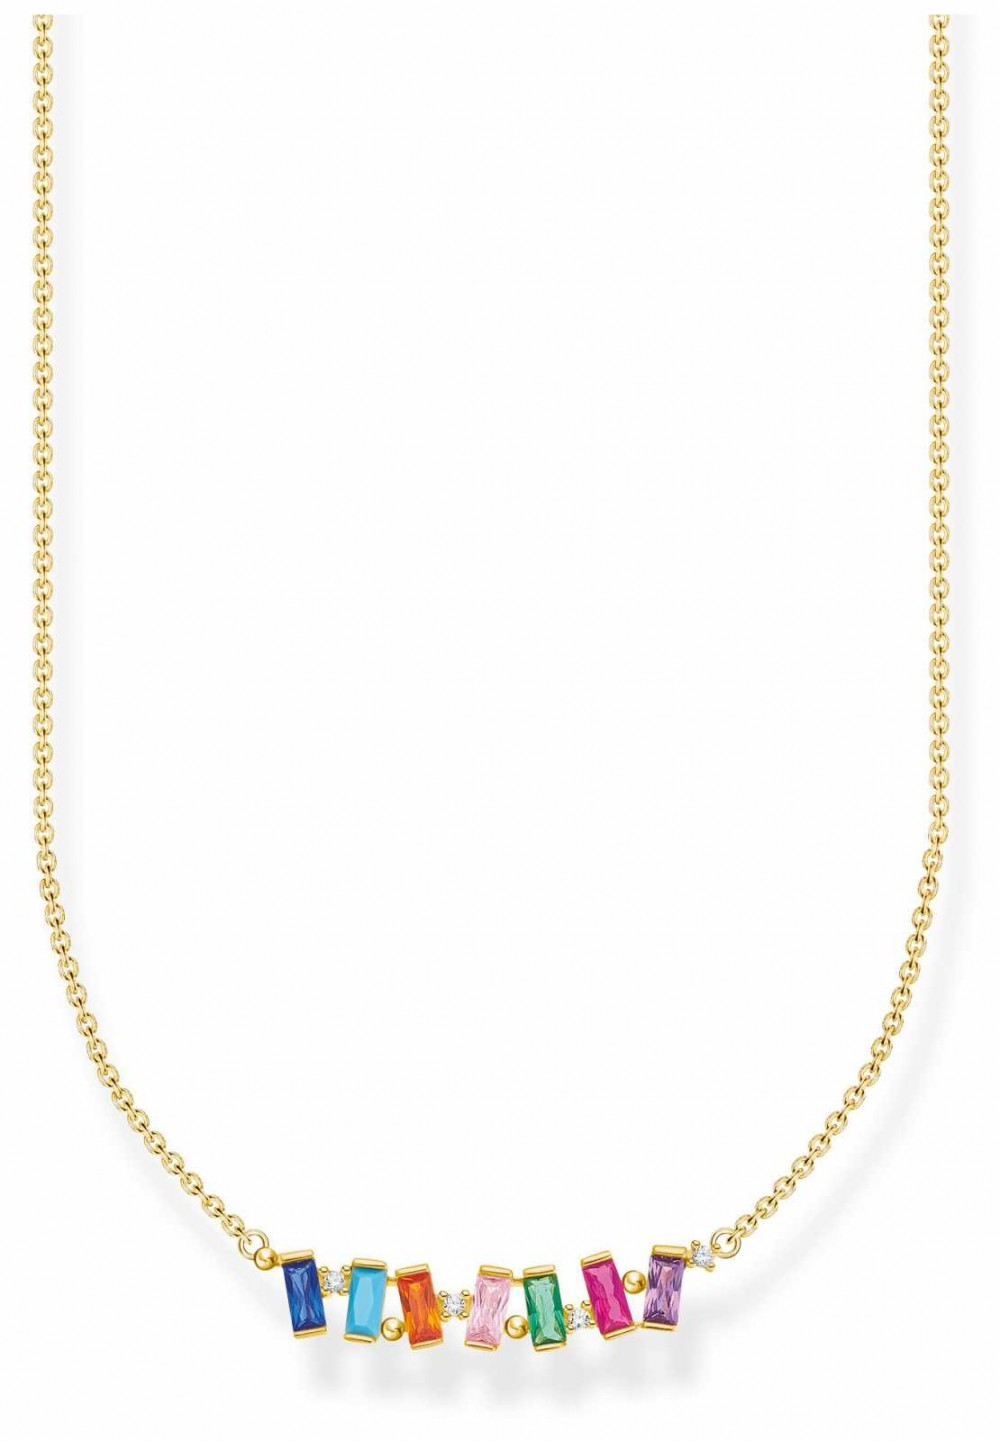 Thomas Sabo Gold Plated Colourful Stones Necklace KE2095-488-7-L45V